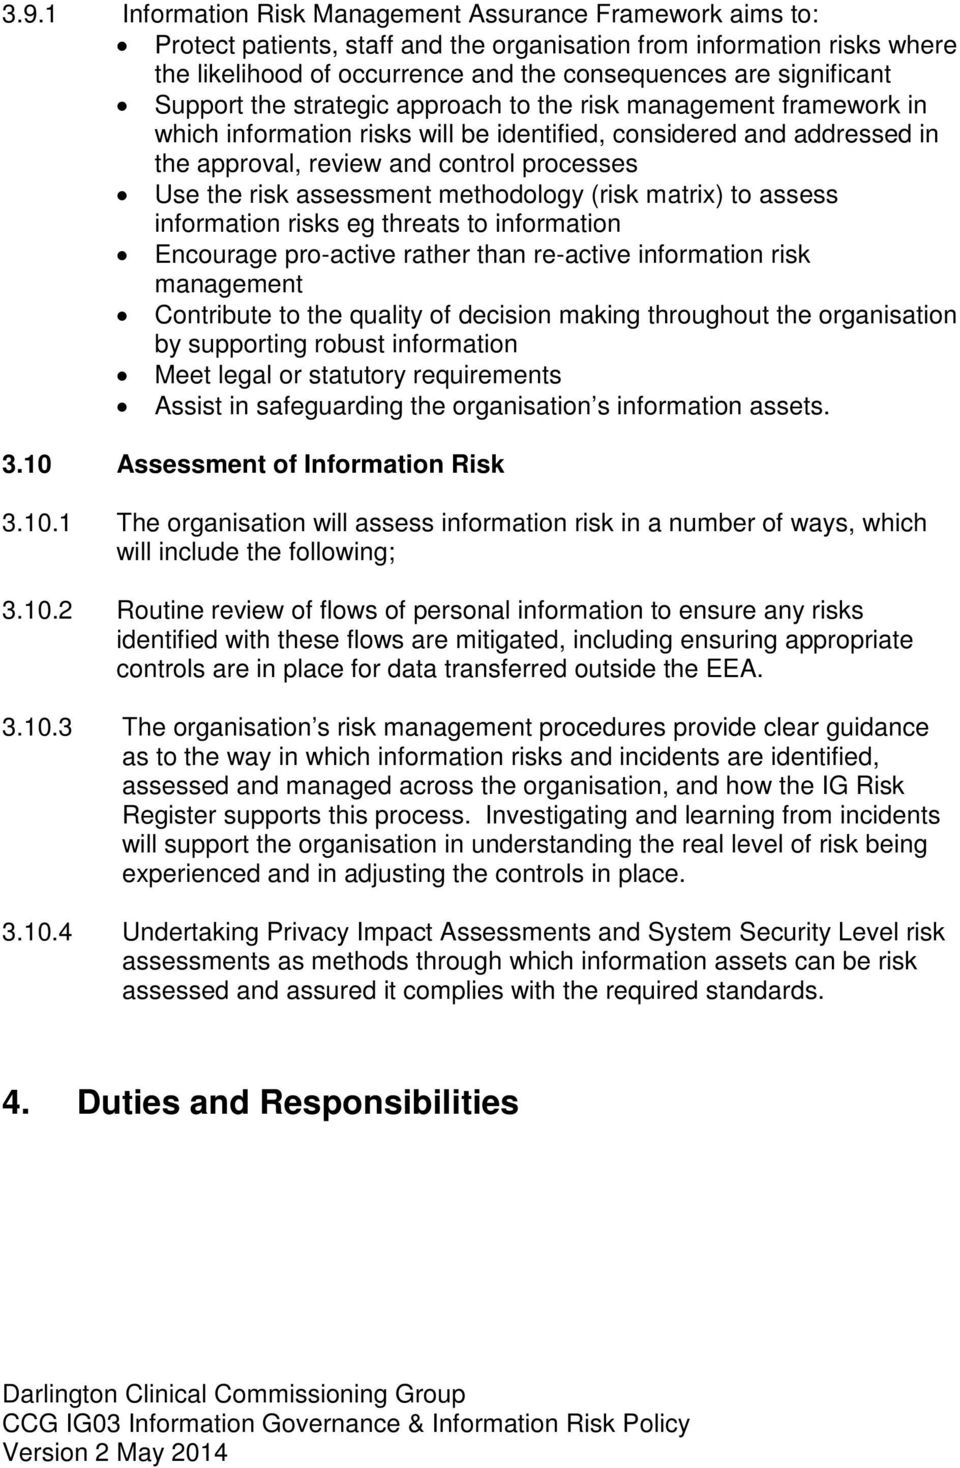 the risk assessment methodology (risk matrix) to assess information risks eg threats to information Encourage pro-active rather than re-active information risk management Contribute to the quality of